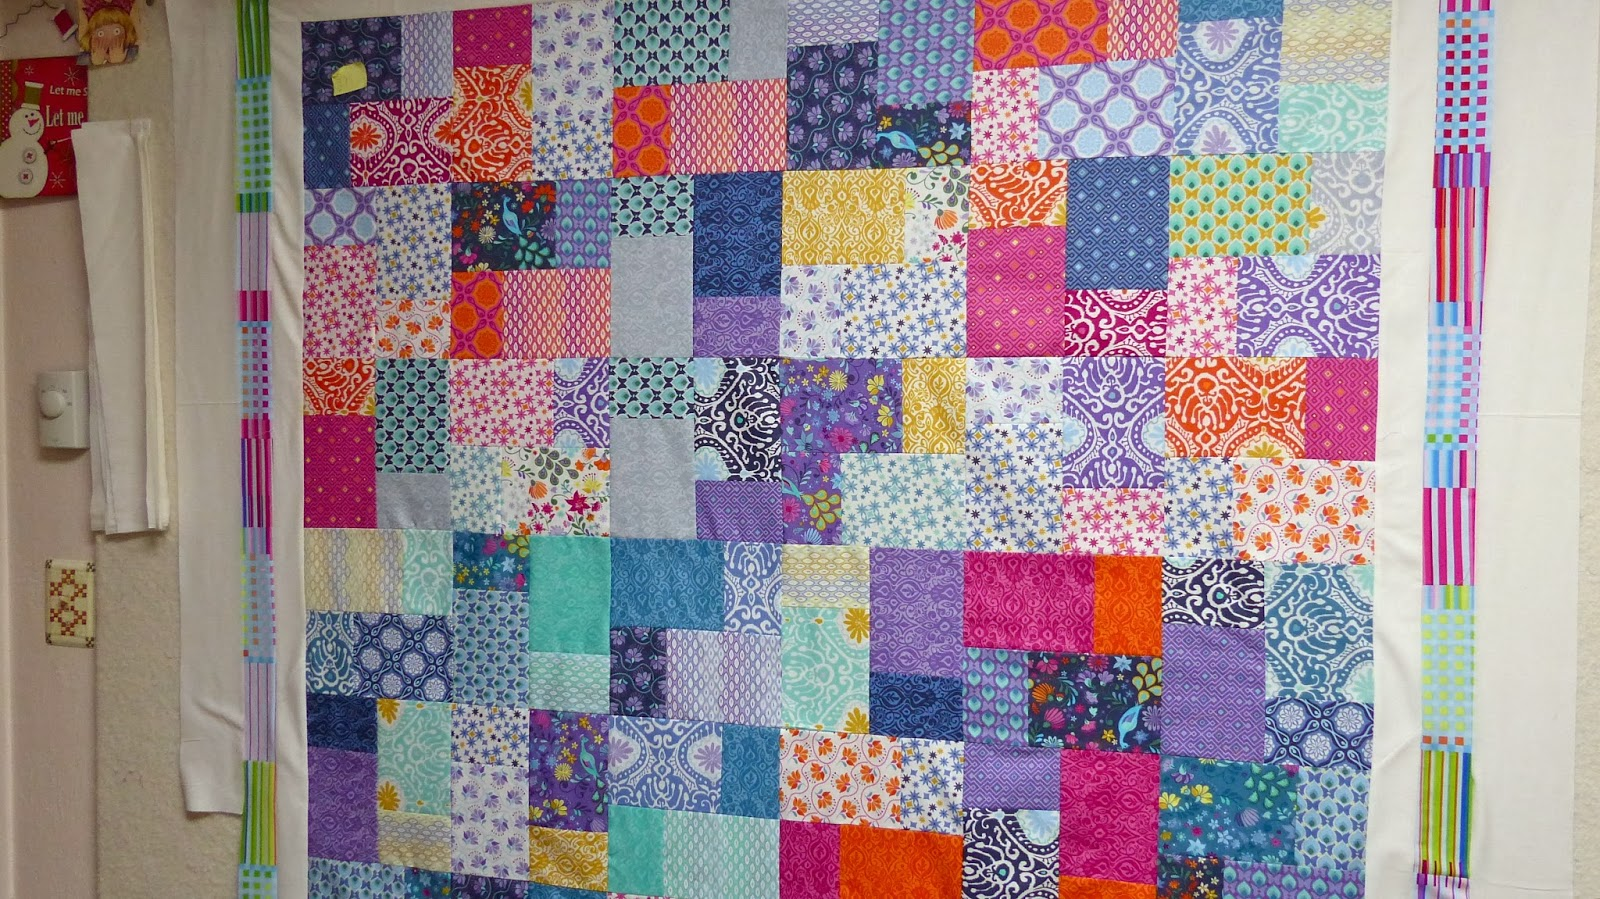 Double Slice Layer Cake Quilt Pattern Free : Double Layer Birthday Cake With Candles Royalty Free Clip ...